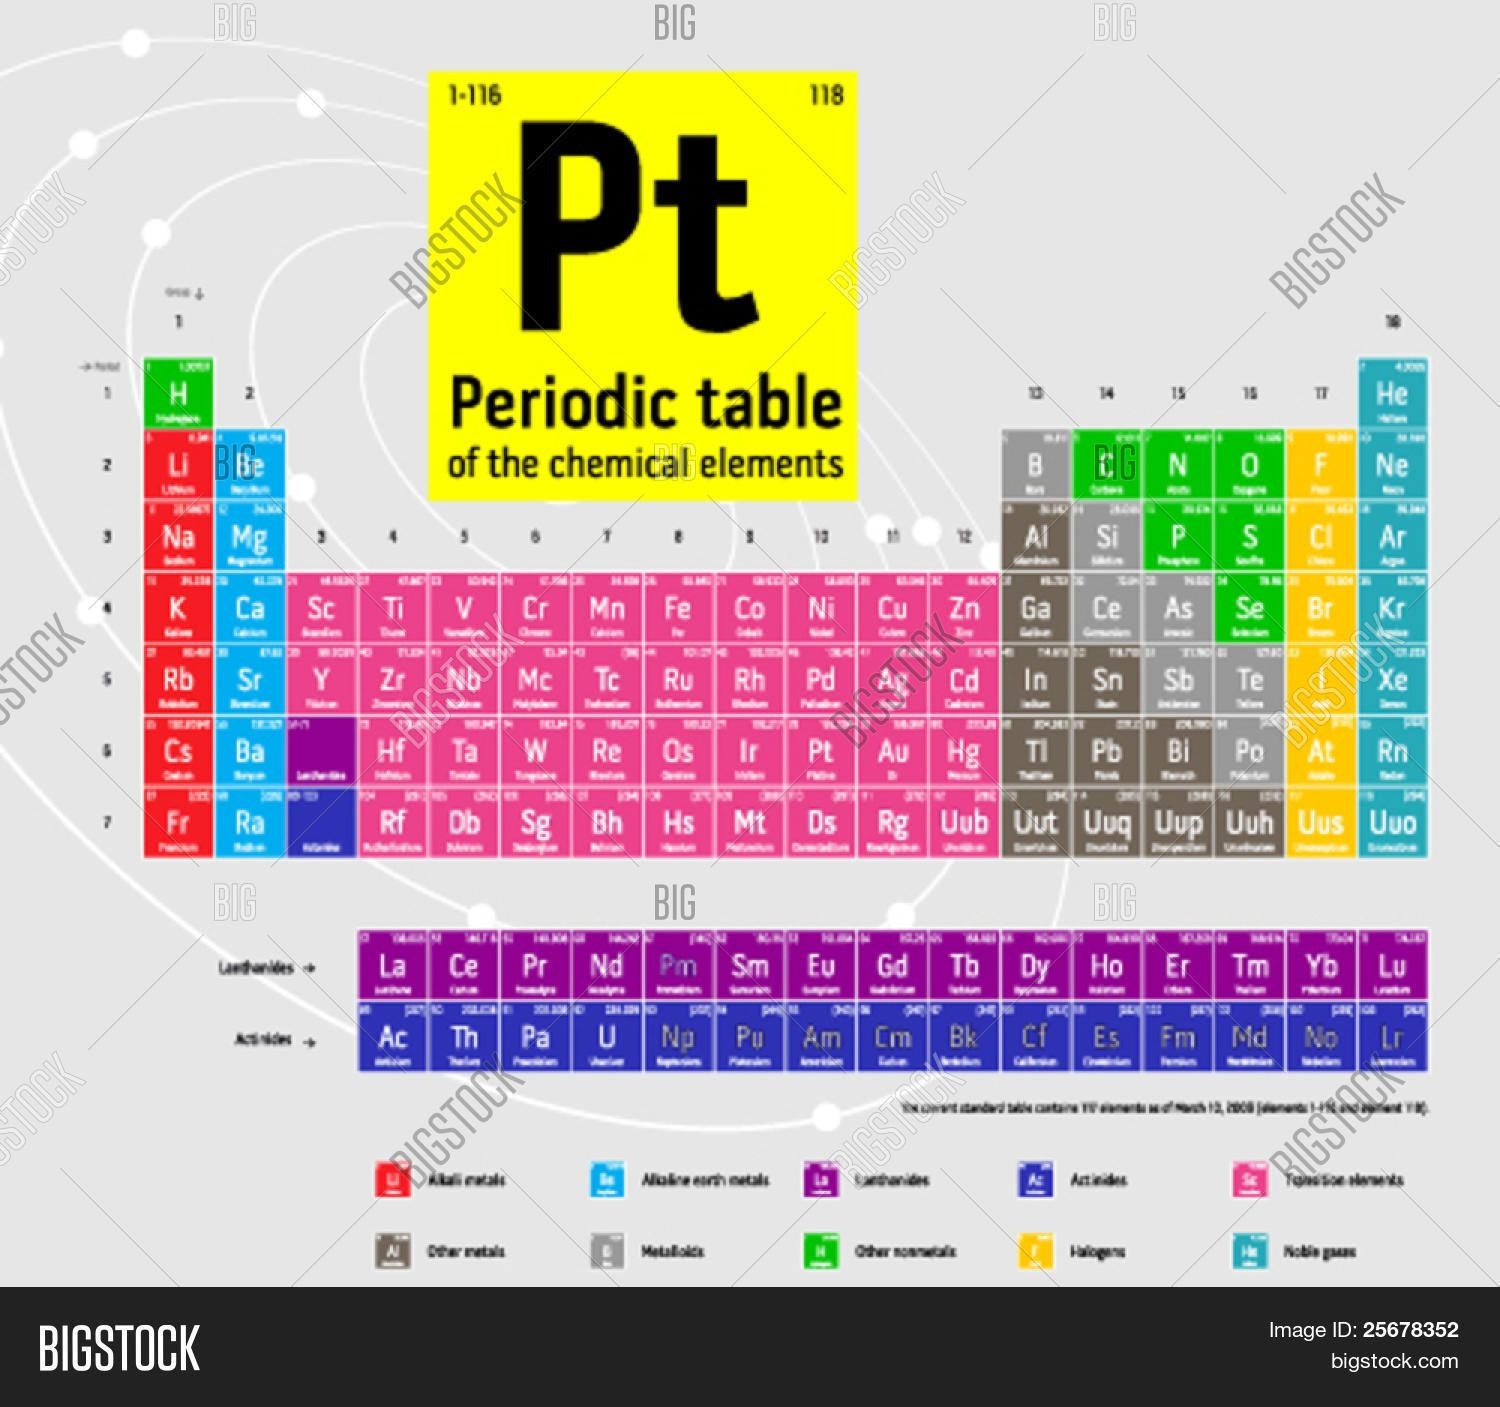 Element 116 Periodic Table